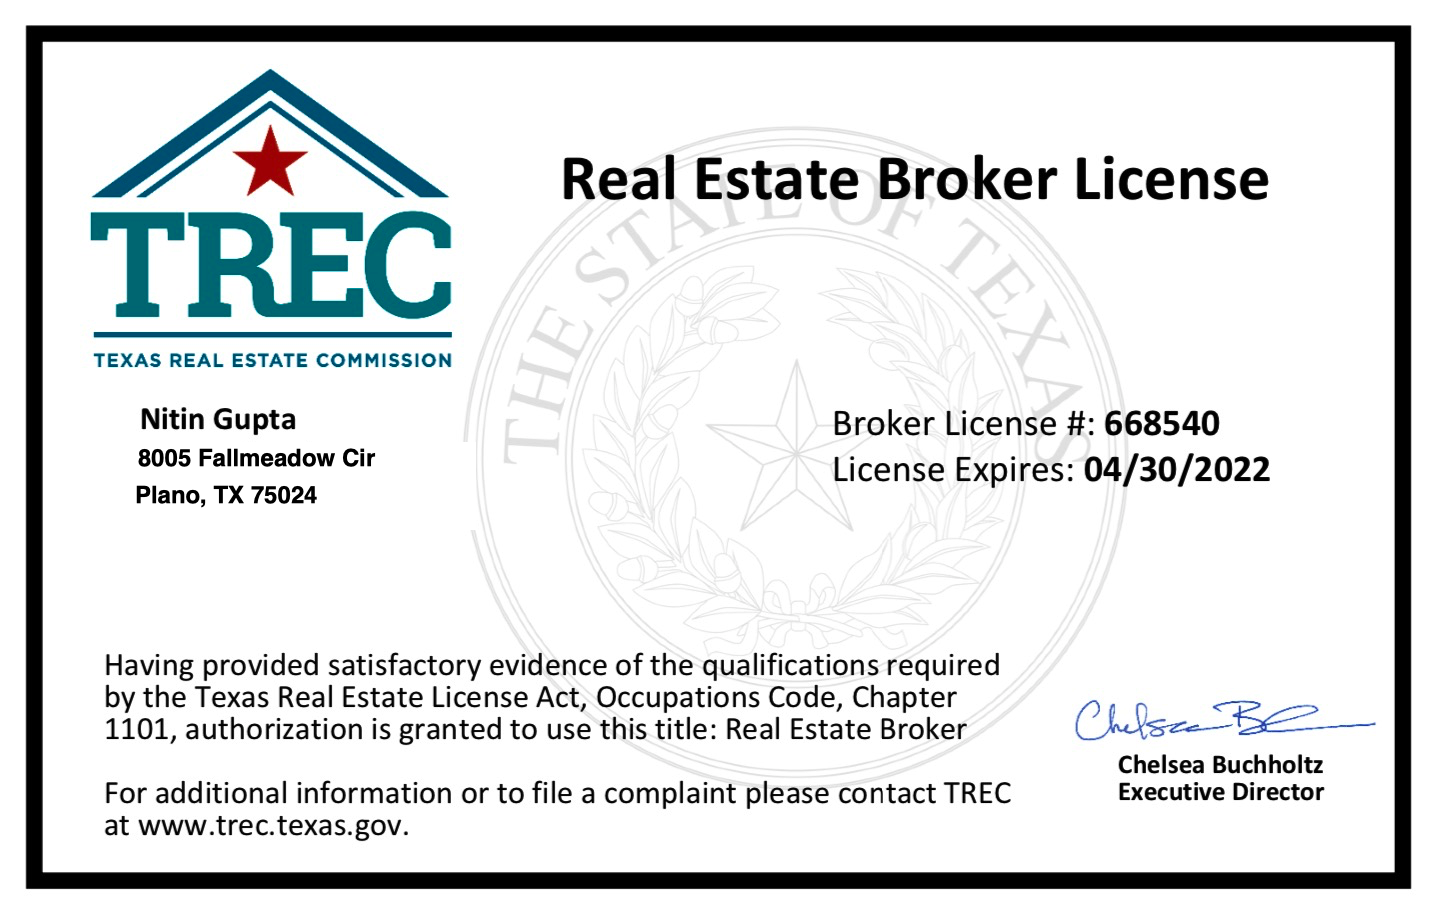 Competitive Edge Realty Real Estate Agent Nitin Gupta Awarded Associate Broker License Real Estate Broker License Real Estate Agent Brokers